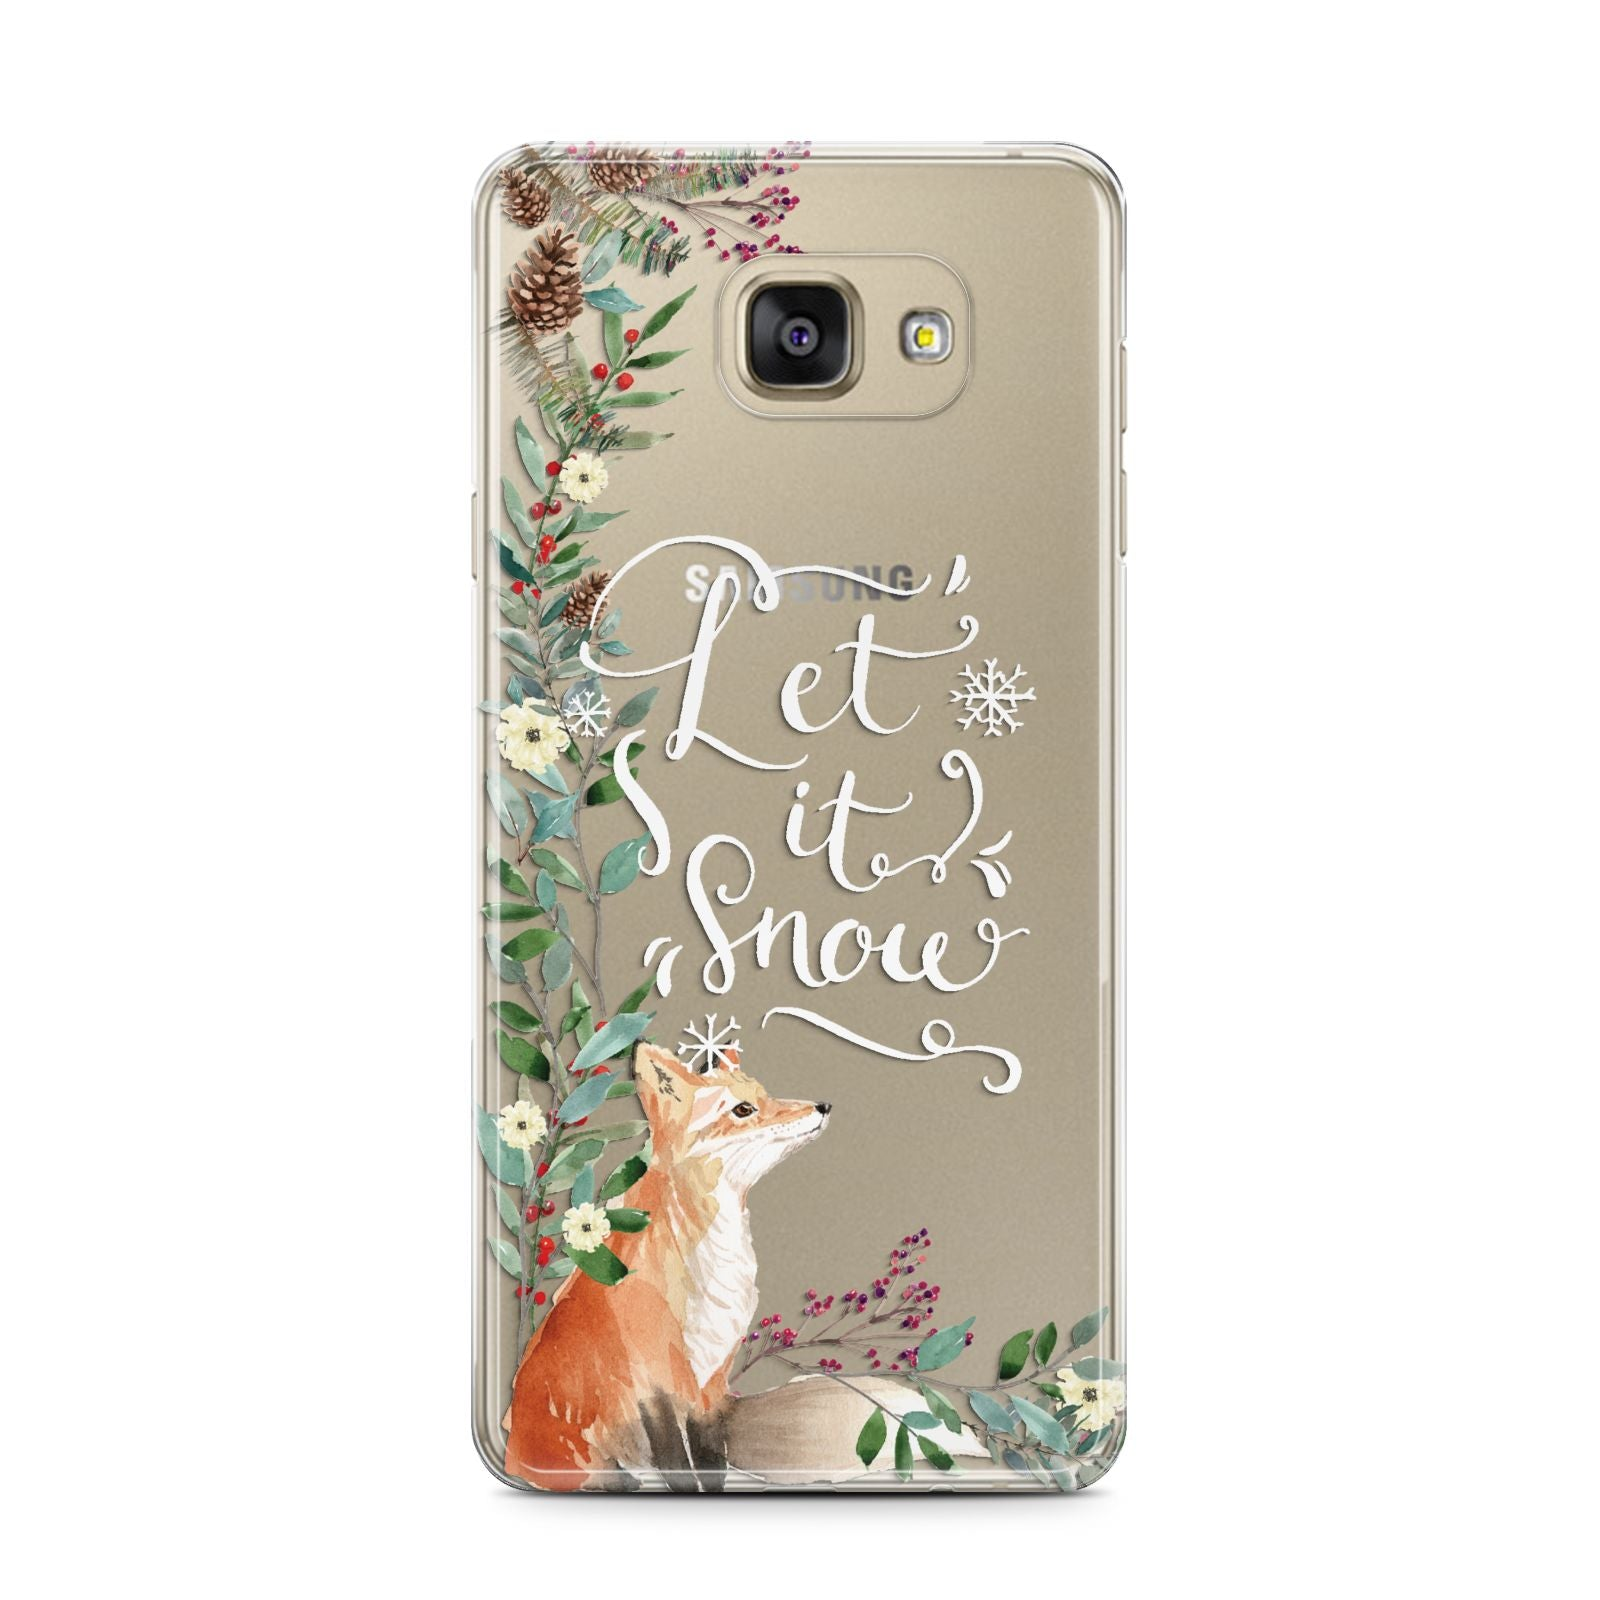 Let It Snow Christmas Samsung Galaxy A7 2016 Case on gold phone